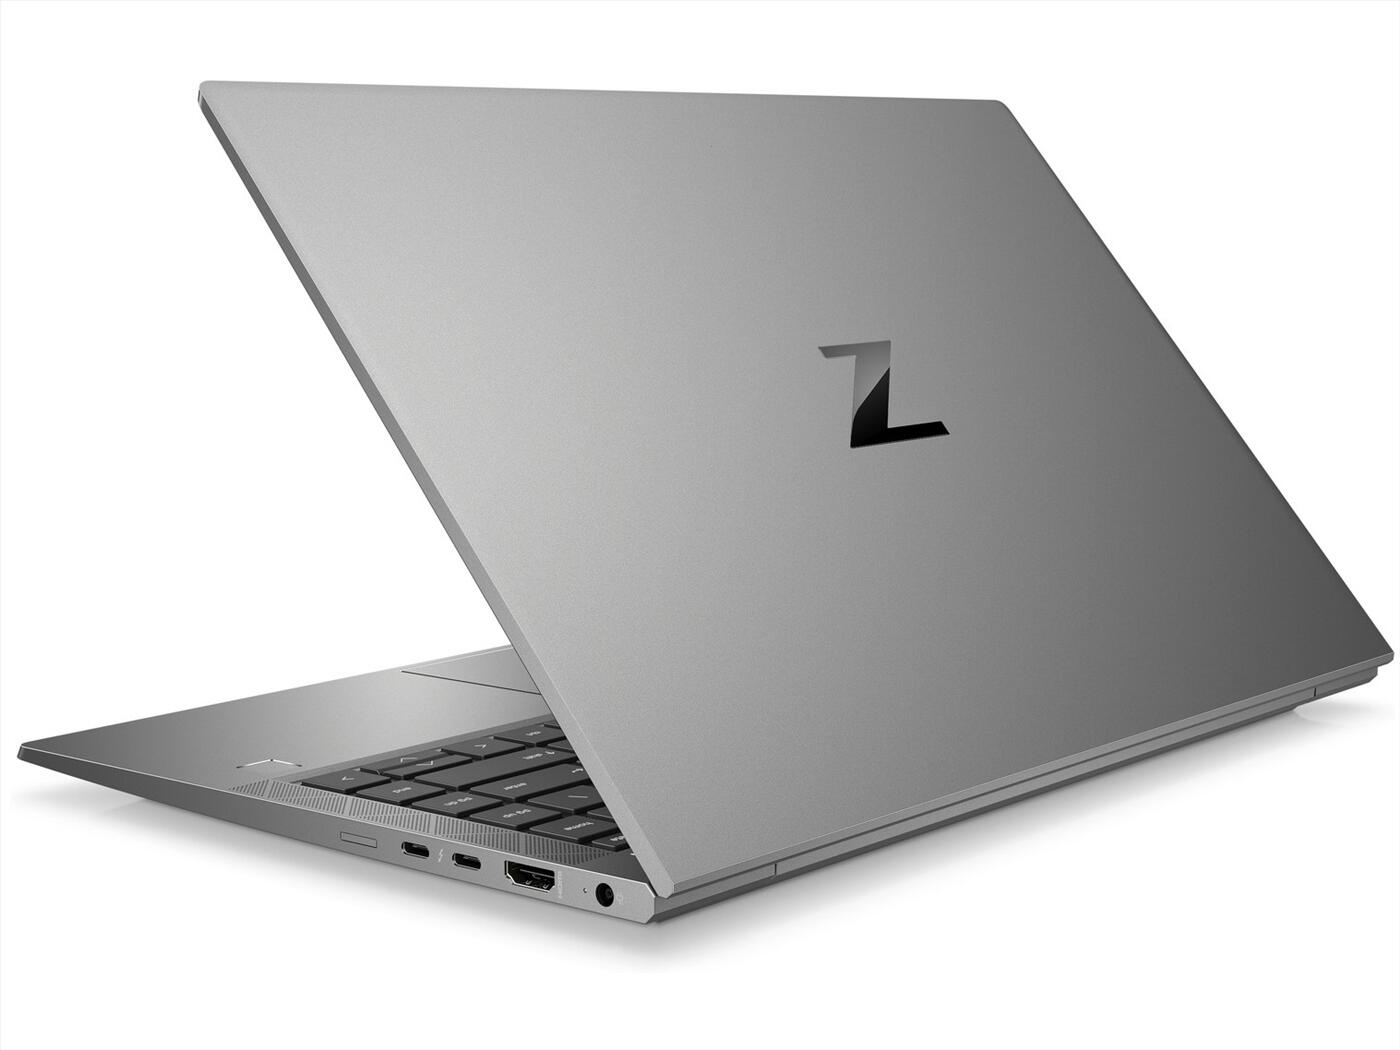 HP ZBook Firefly 14 G8 - Intel Core i7-1165G7 (2.80 Ghz, 4C8T, 12MB)